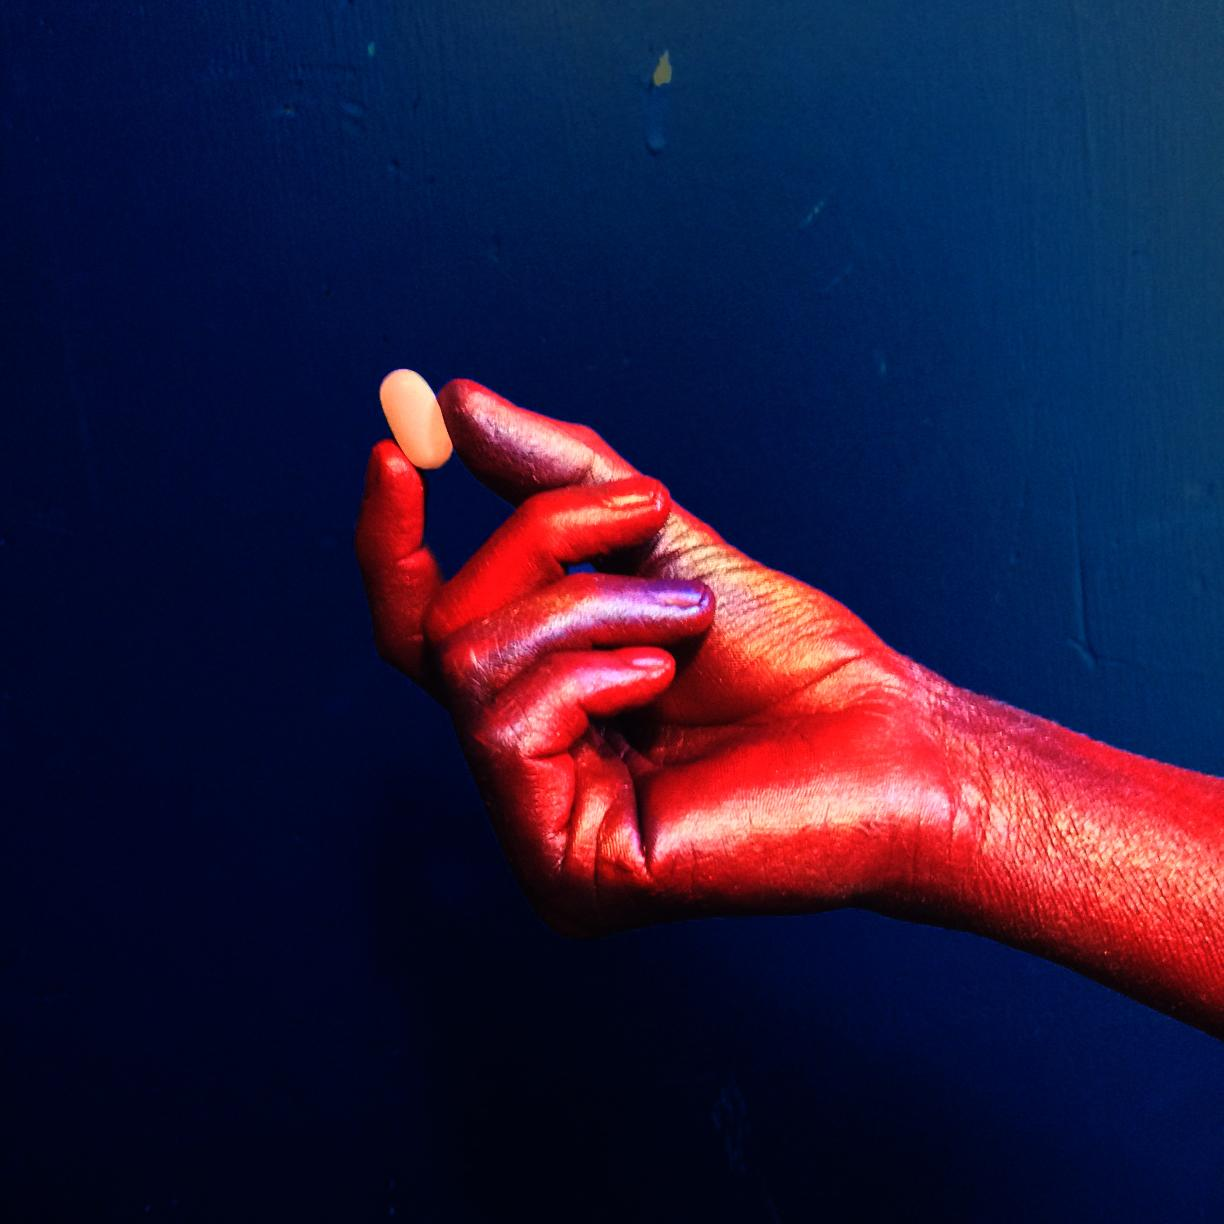 Color photo of a hand holding a pill. The hand is painted red and the background of the photograph is bright blue.